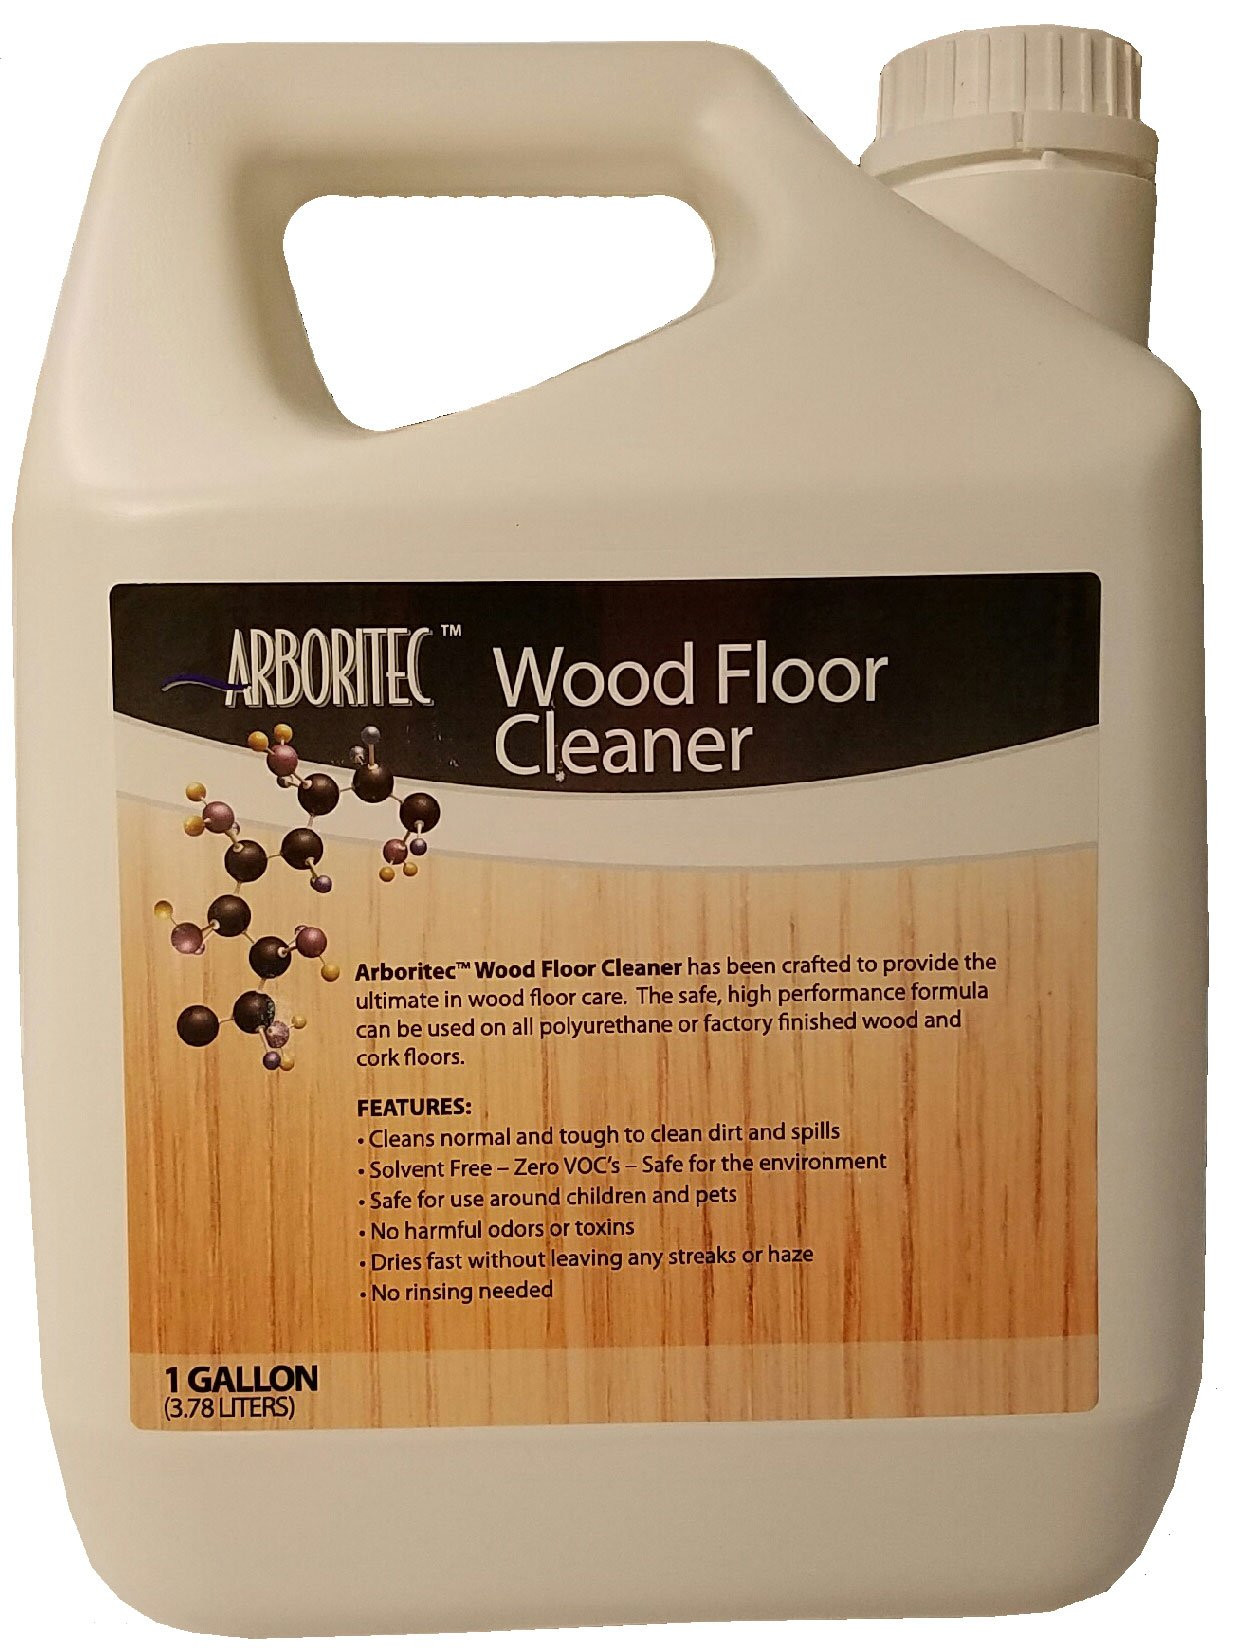 hardwood floor cleaners consumer reviews of amazon com arboritec wood floor cleanr 32oz spray 2 pack health pertaining to wood floor cleaner 1 1 gallon refill